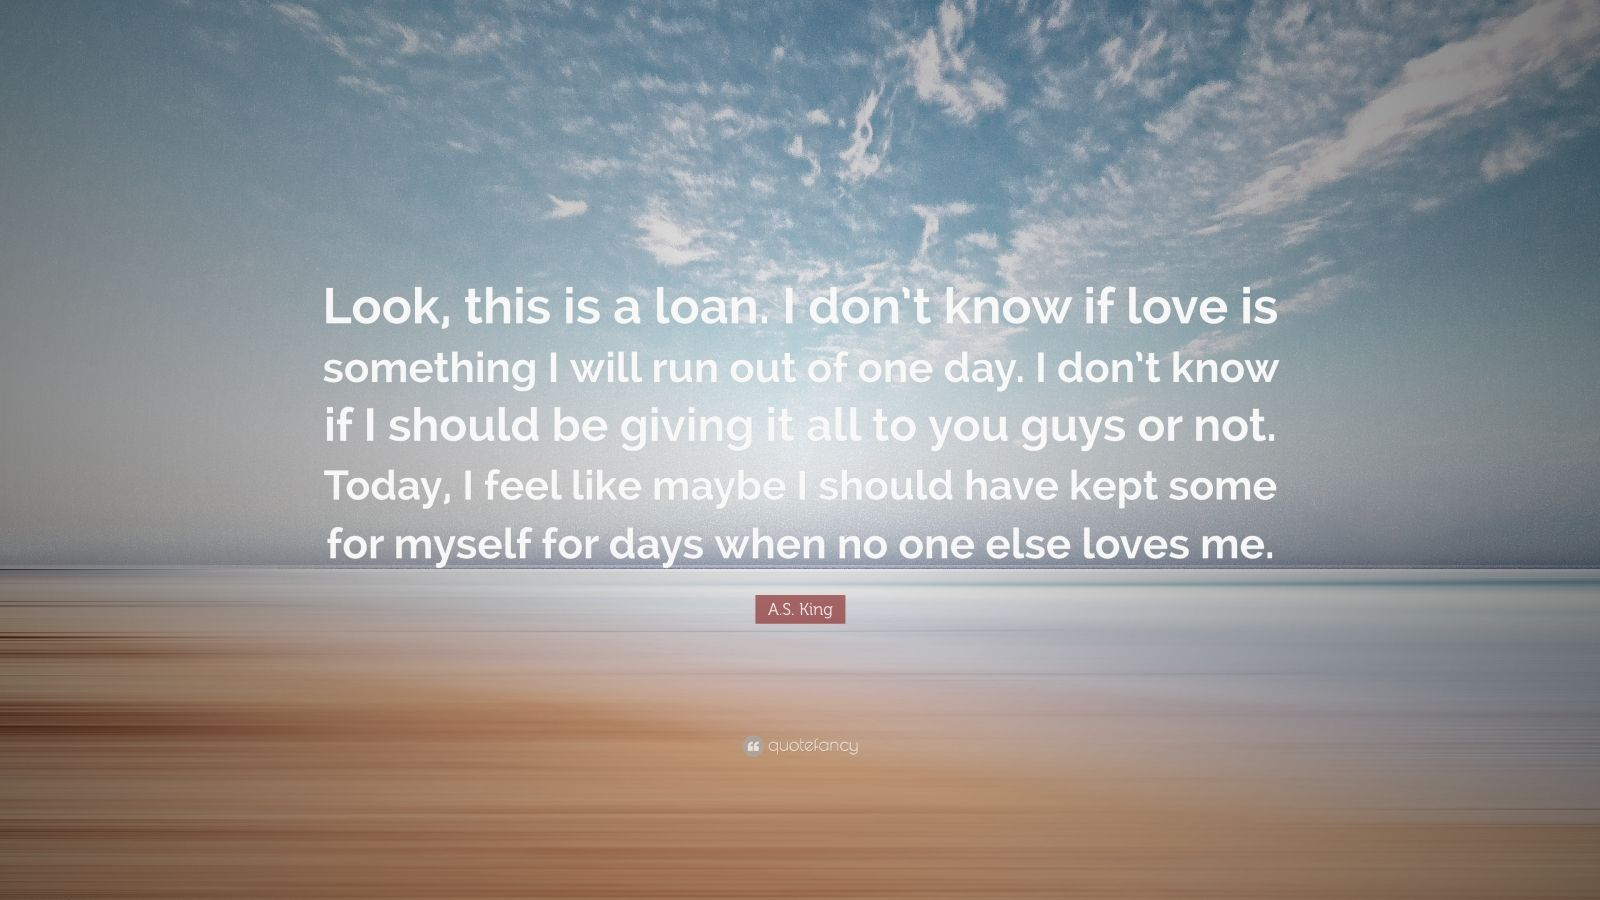 """A.S. King Quote: """"Look, this is a loan. I don't know if love is something I will run out of one day. I don't know if I should be giving it all to you guys or not. Today, I feel like maybe I should have kept some for myself for days when no one else loves me."""""""